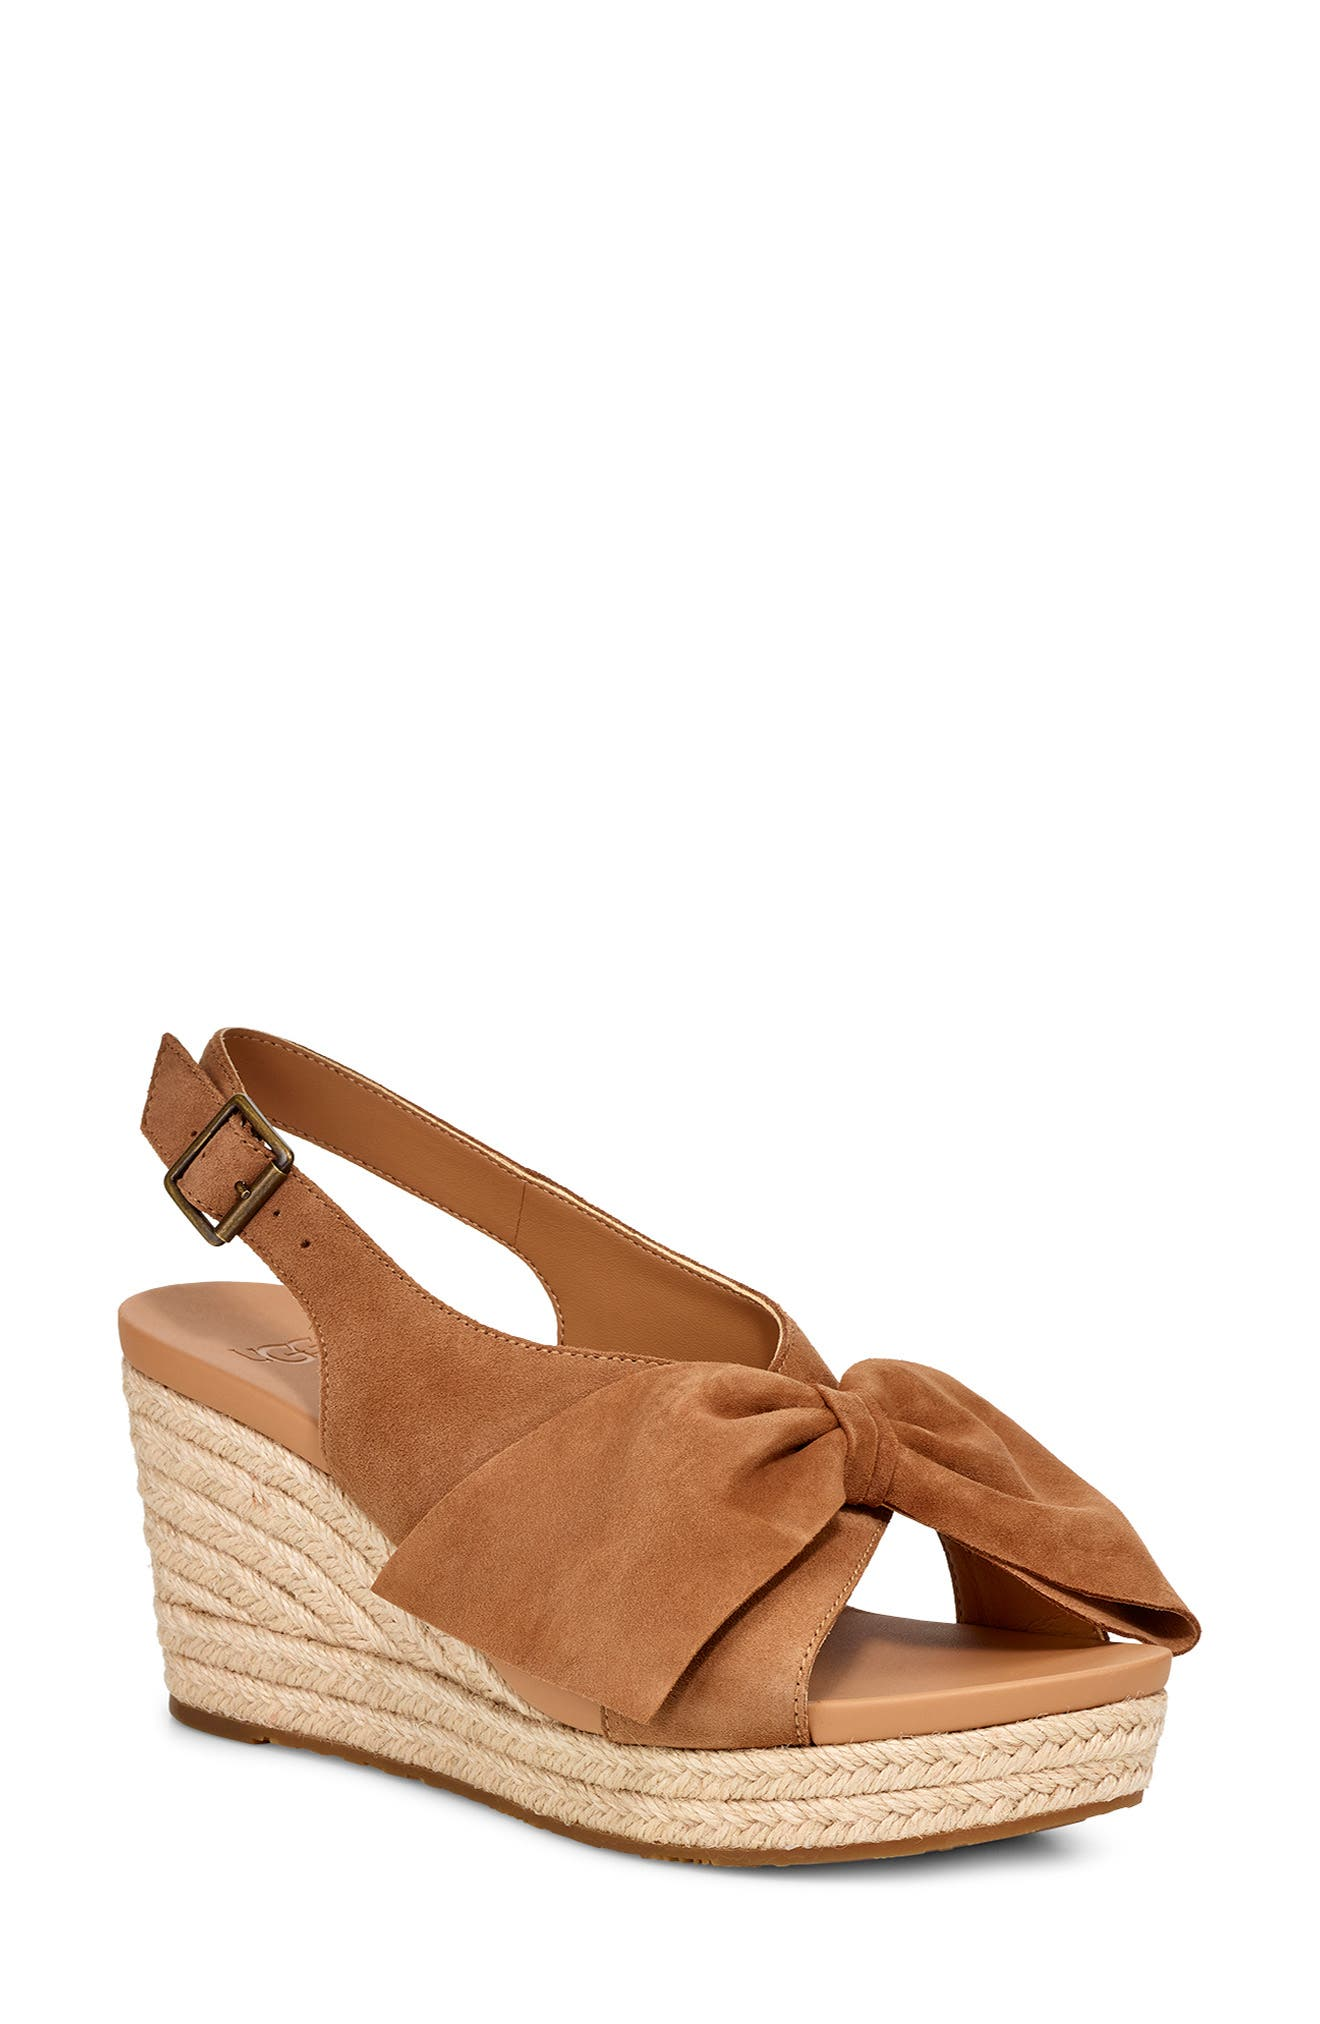 UGG<SUP>®</SUP>, Camilla Wedge Sandal, Main thumbnail 1, color, CHESTNUT SUEDE